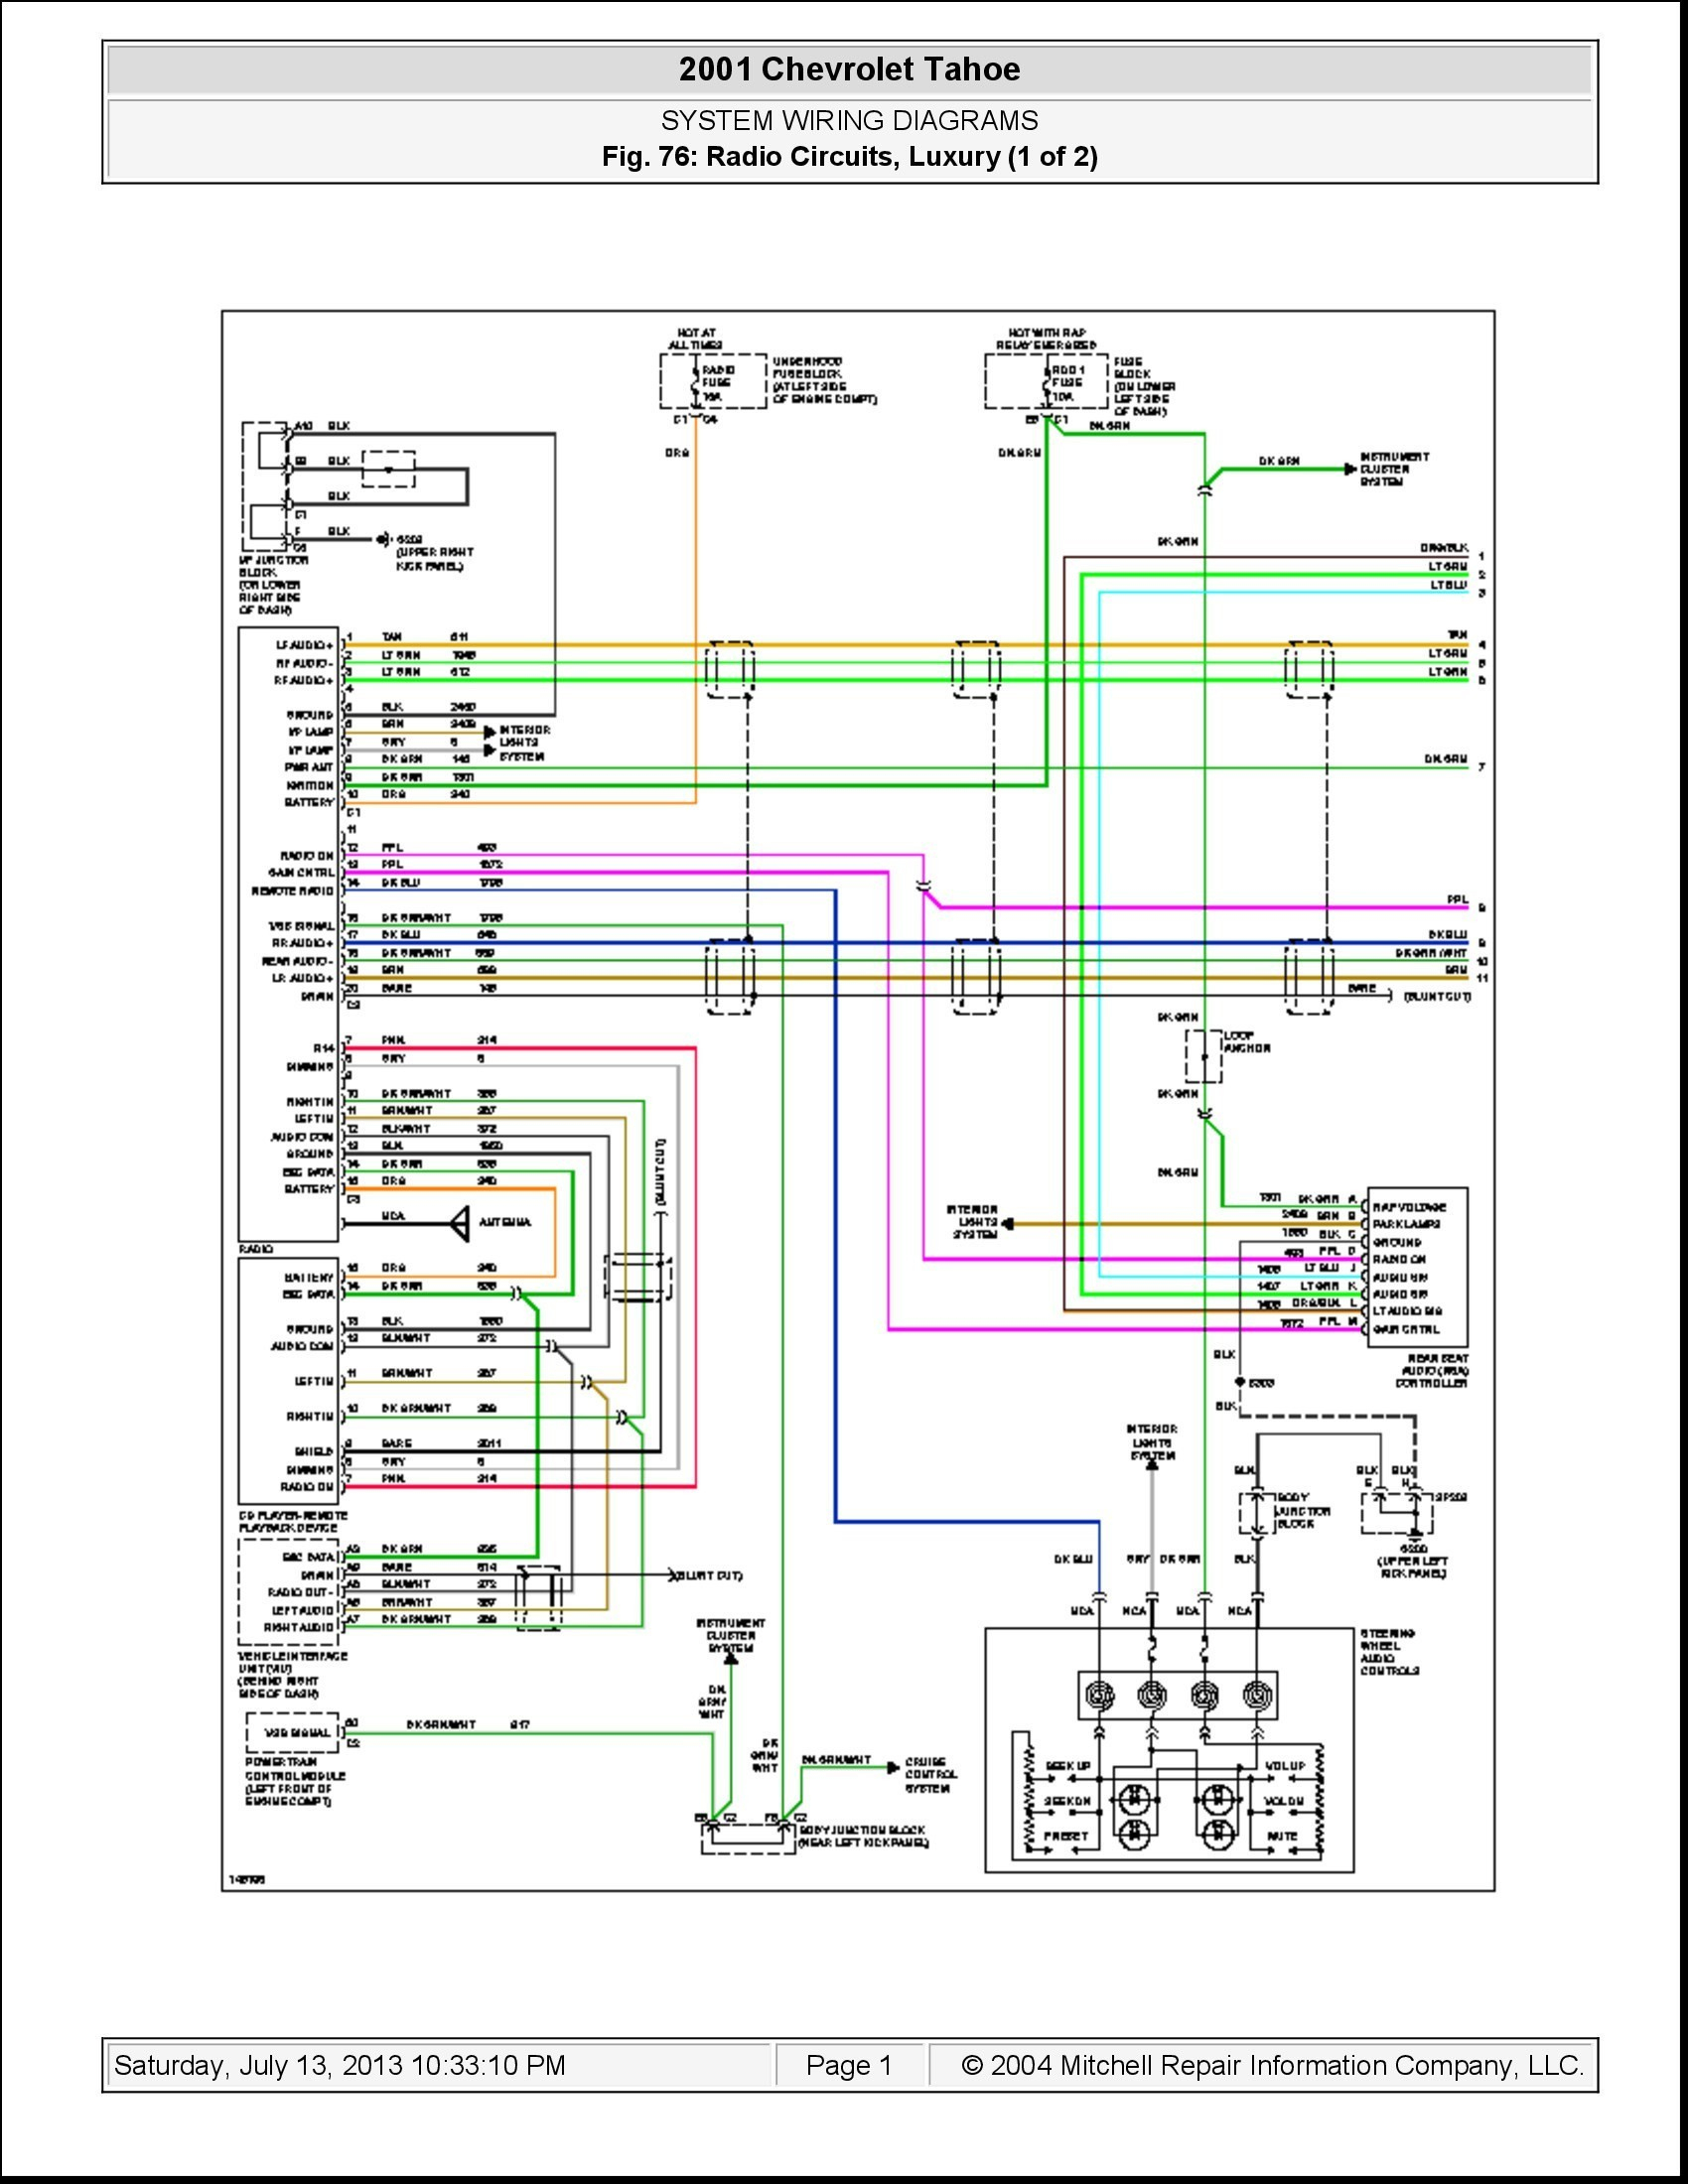 2005 Chevy Silverado Trailer Wiring Harness Diagram Best Of 5 3 - 05 Silverado Trailer Wiring Diagram